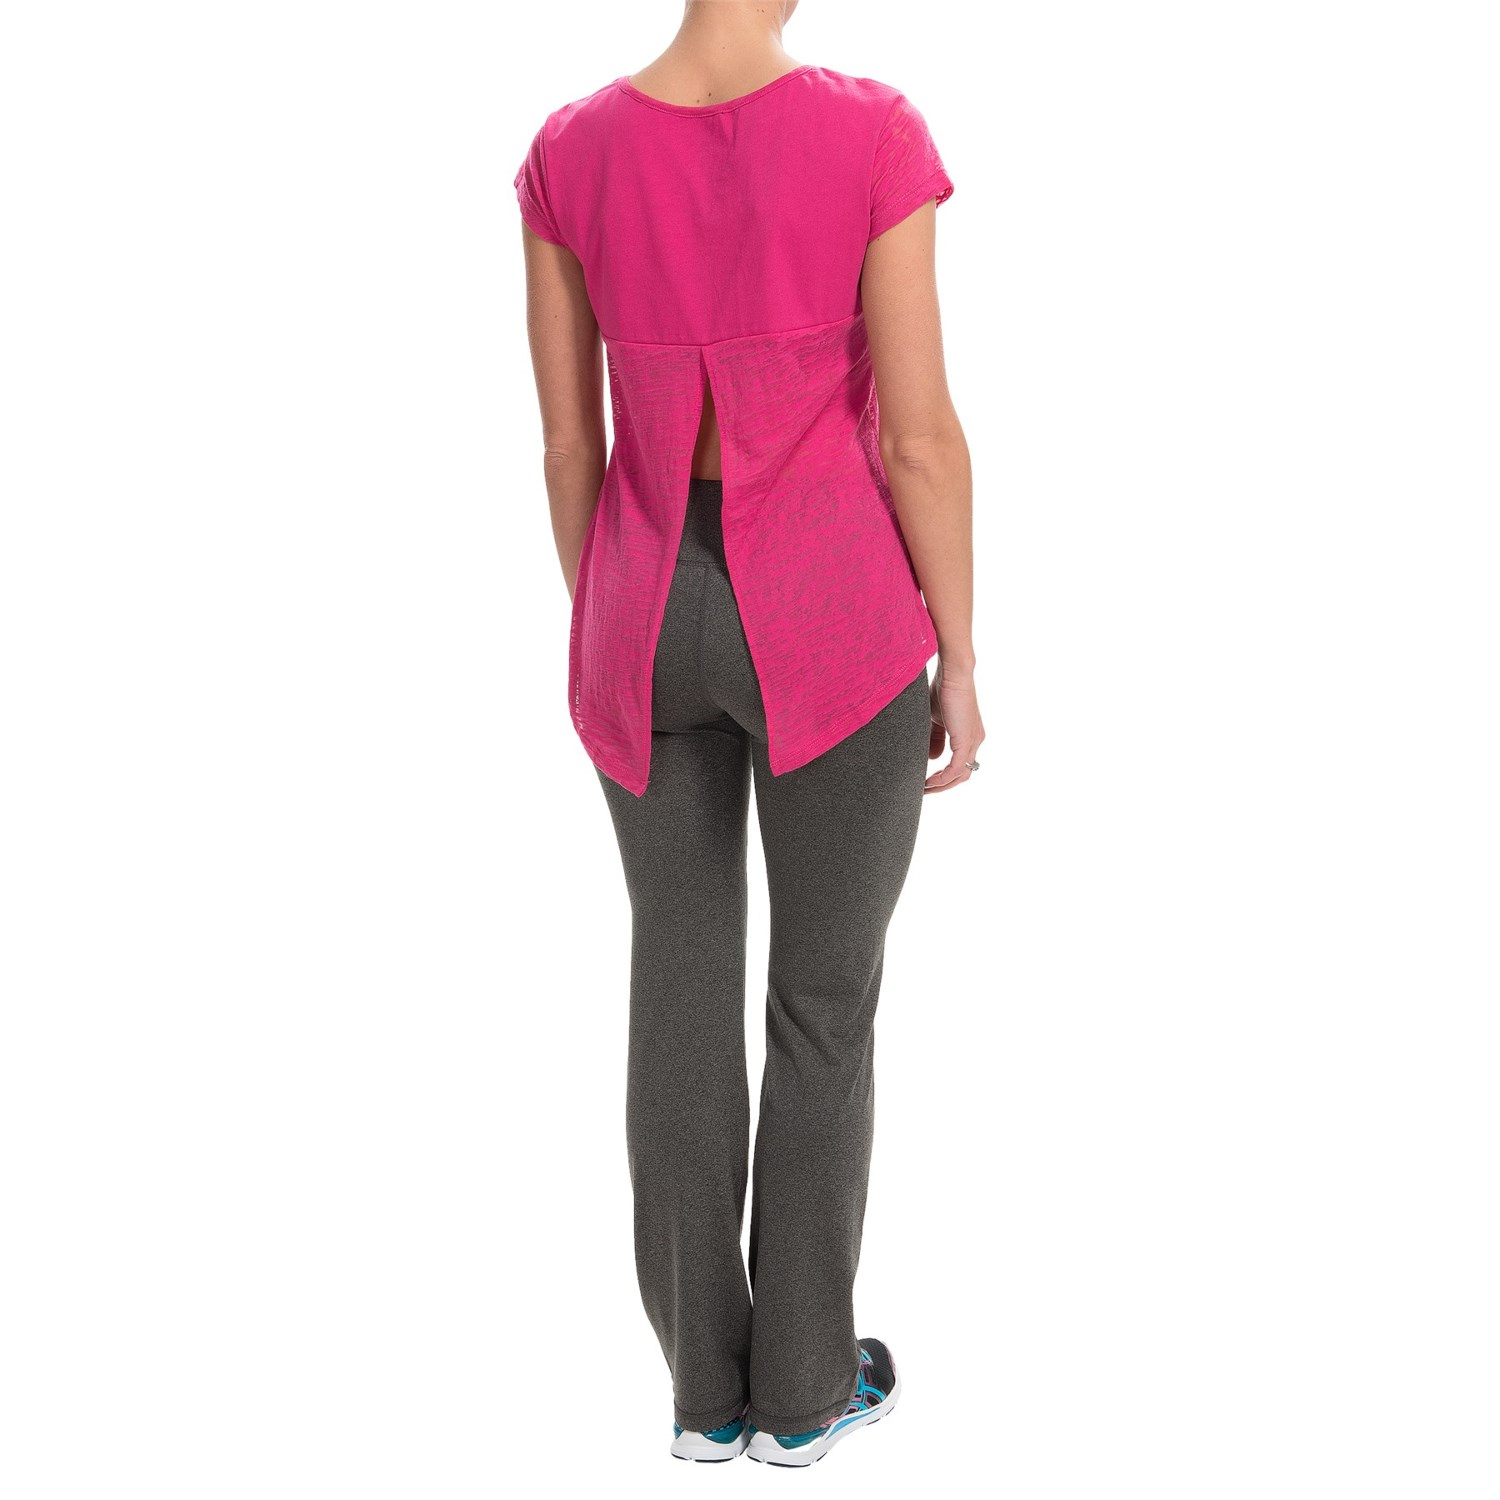 Pants For Women With Short Legs : Popular Purple Pants For